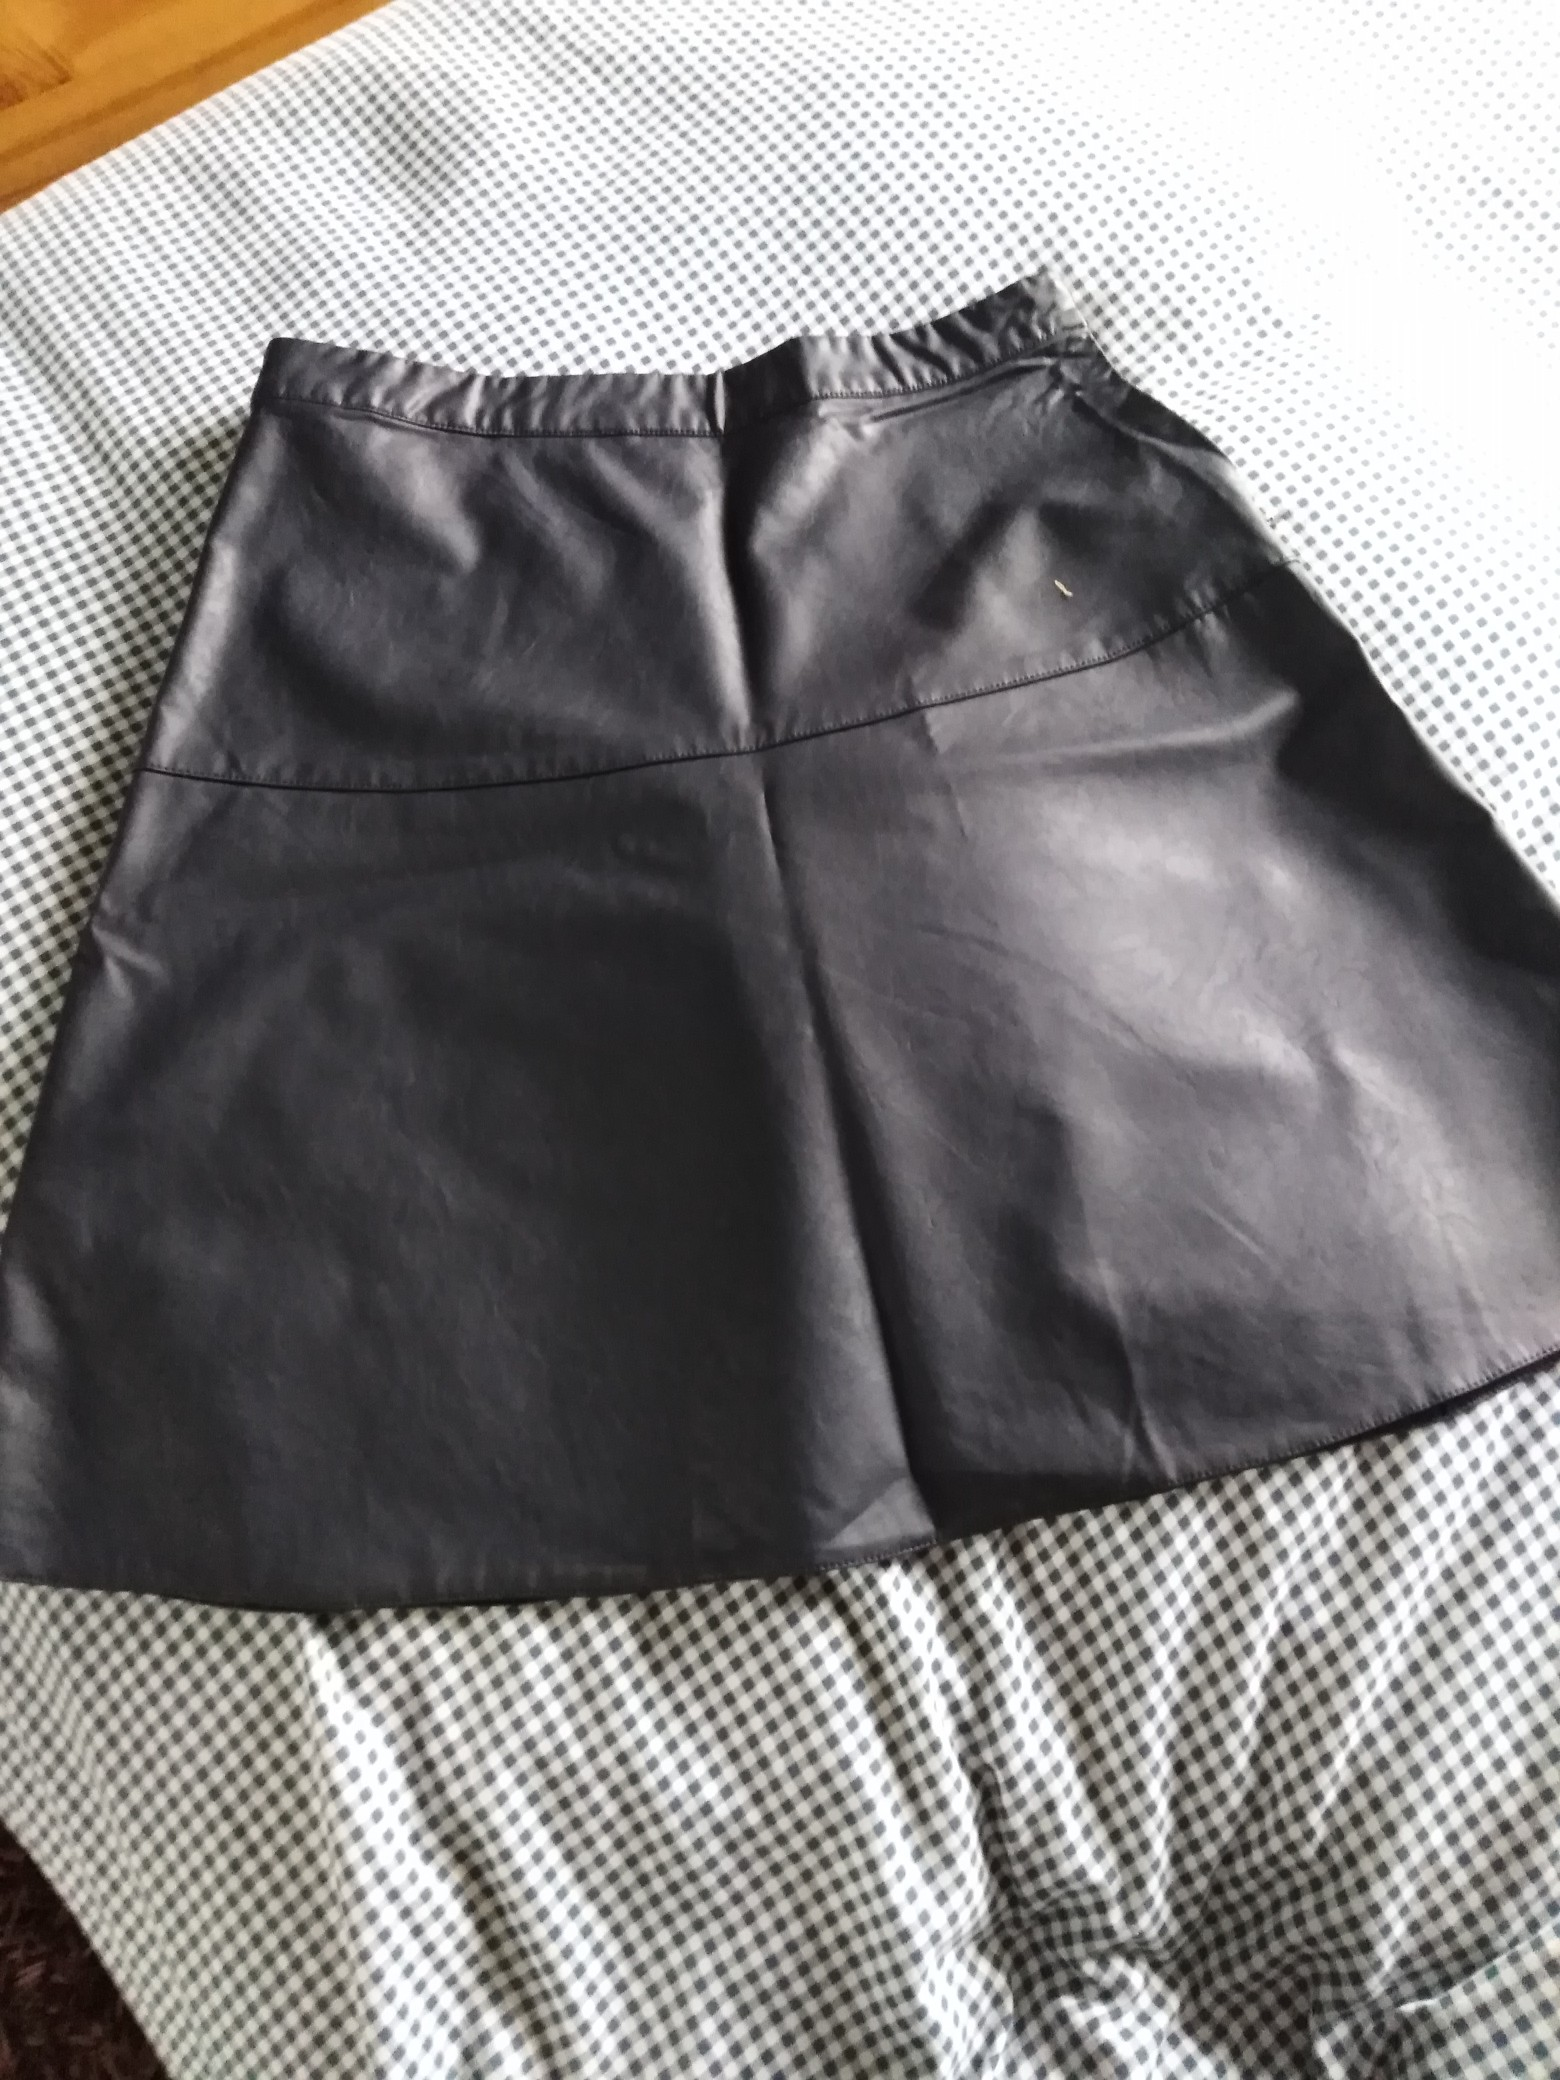 Well-Educated Hnm Leather Skirt Size 14 Women's Clothing